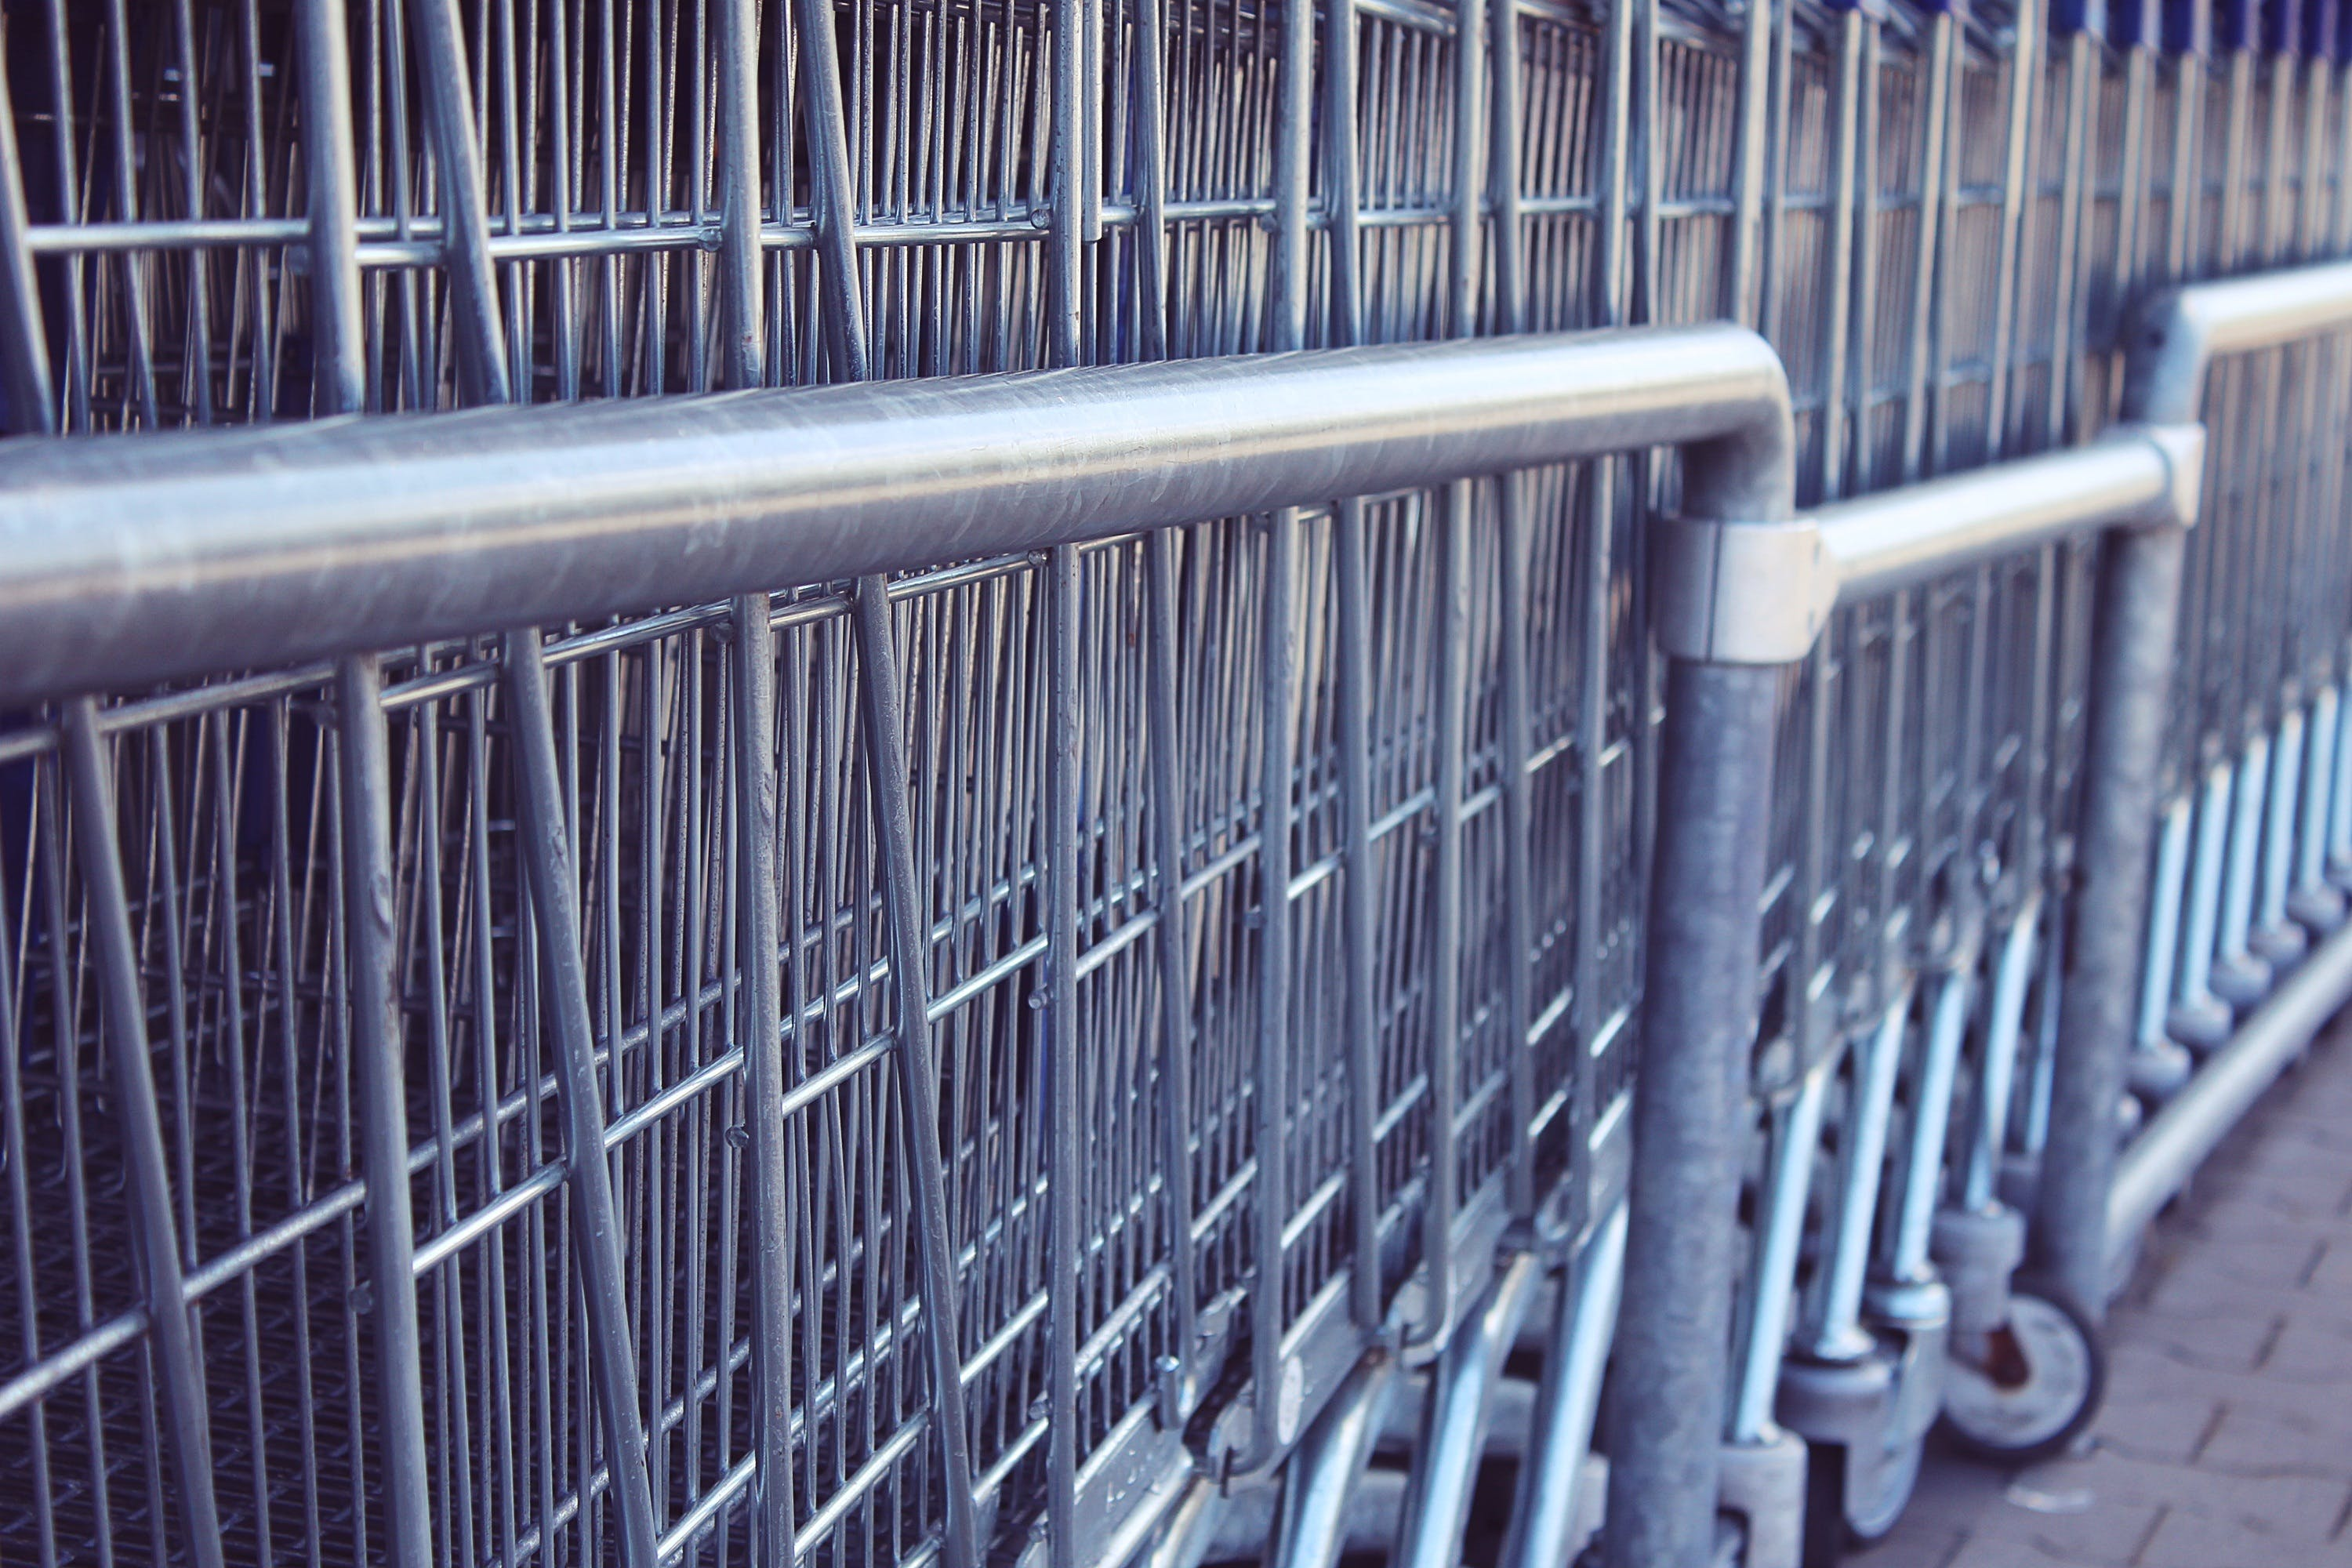 Closeup Photography of Gray Metal Shopping Carts